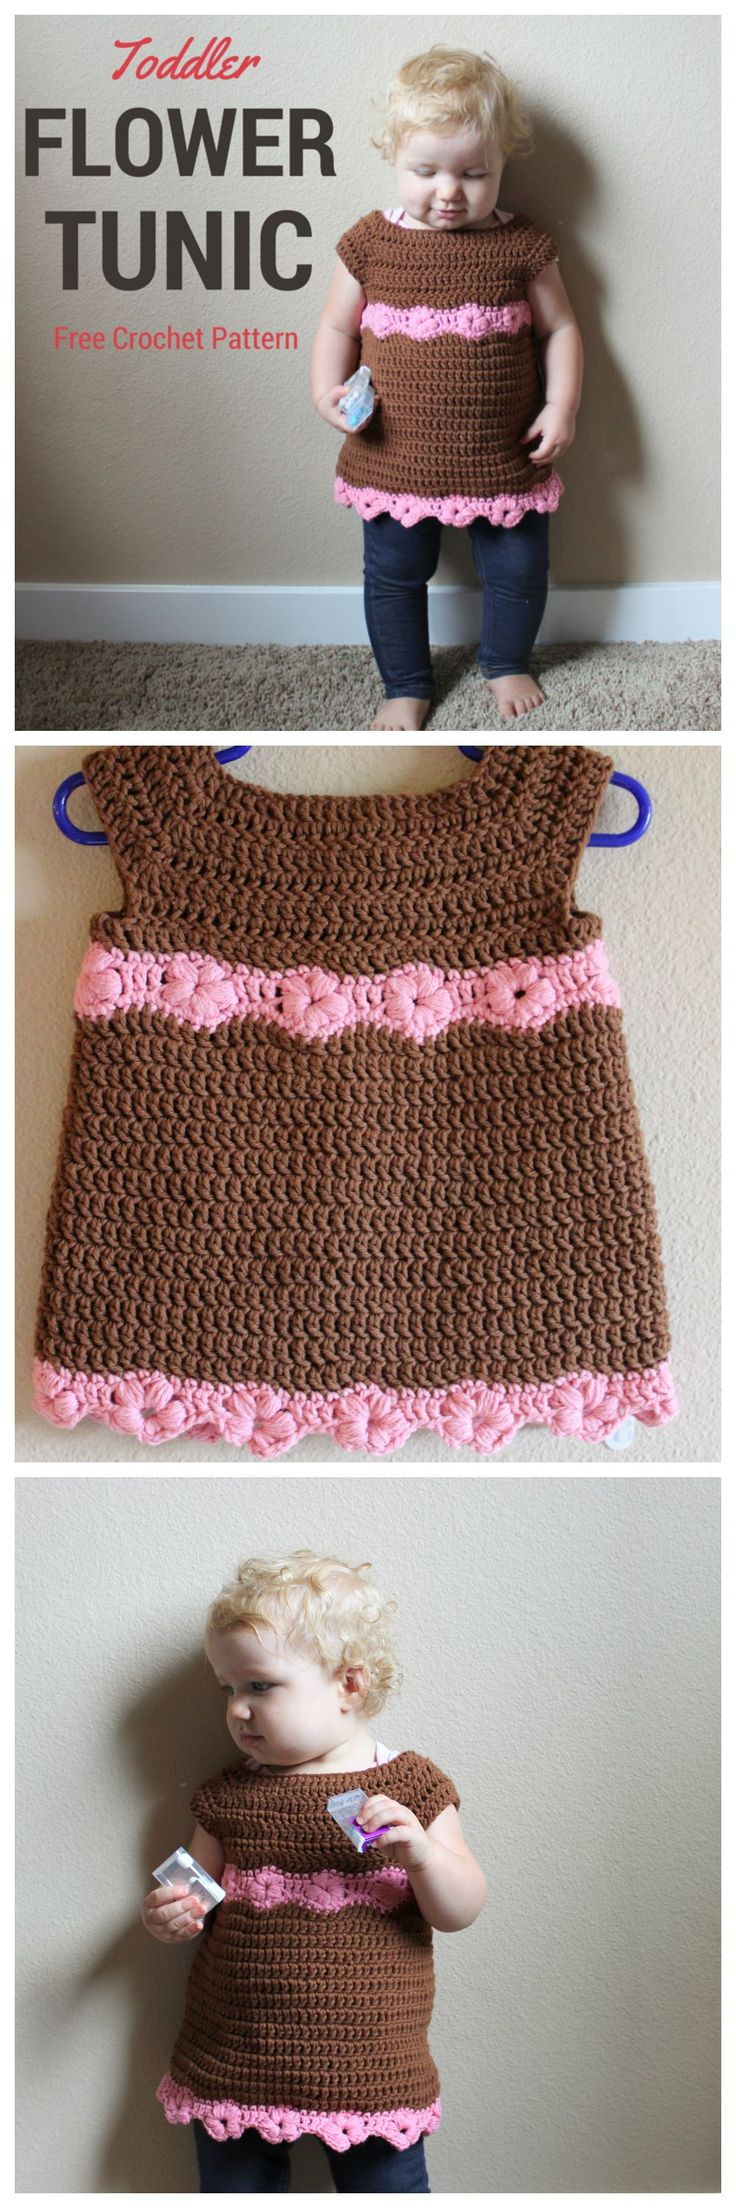 Toddler Flower Tunic - A Free Crochet Pattern:   Crochet Baby and ...